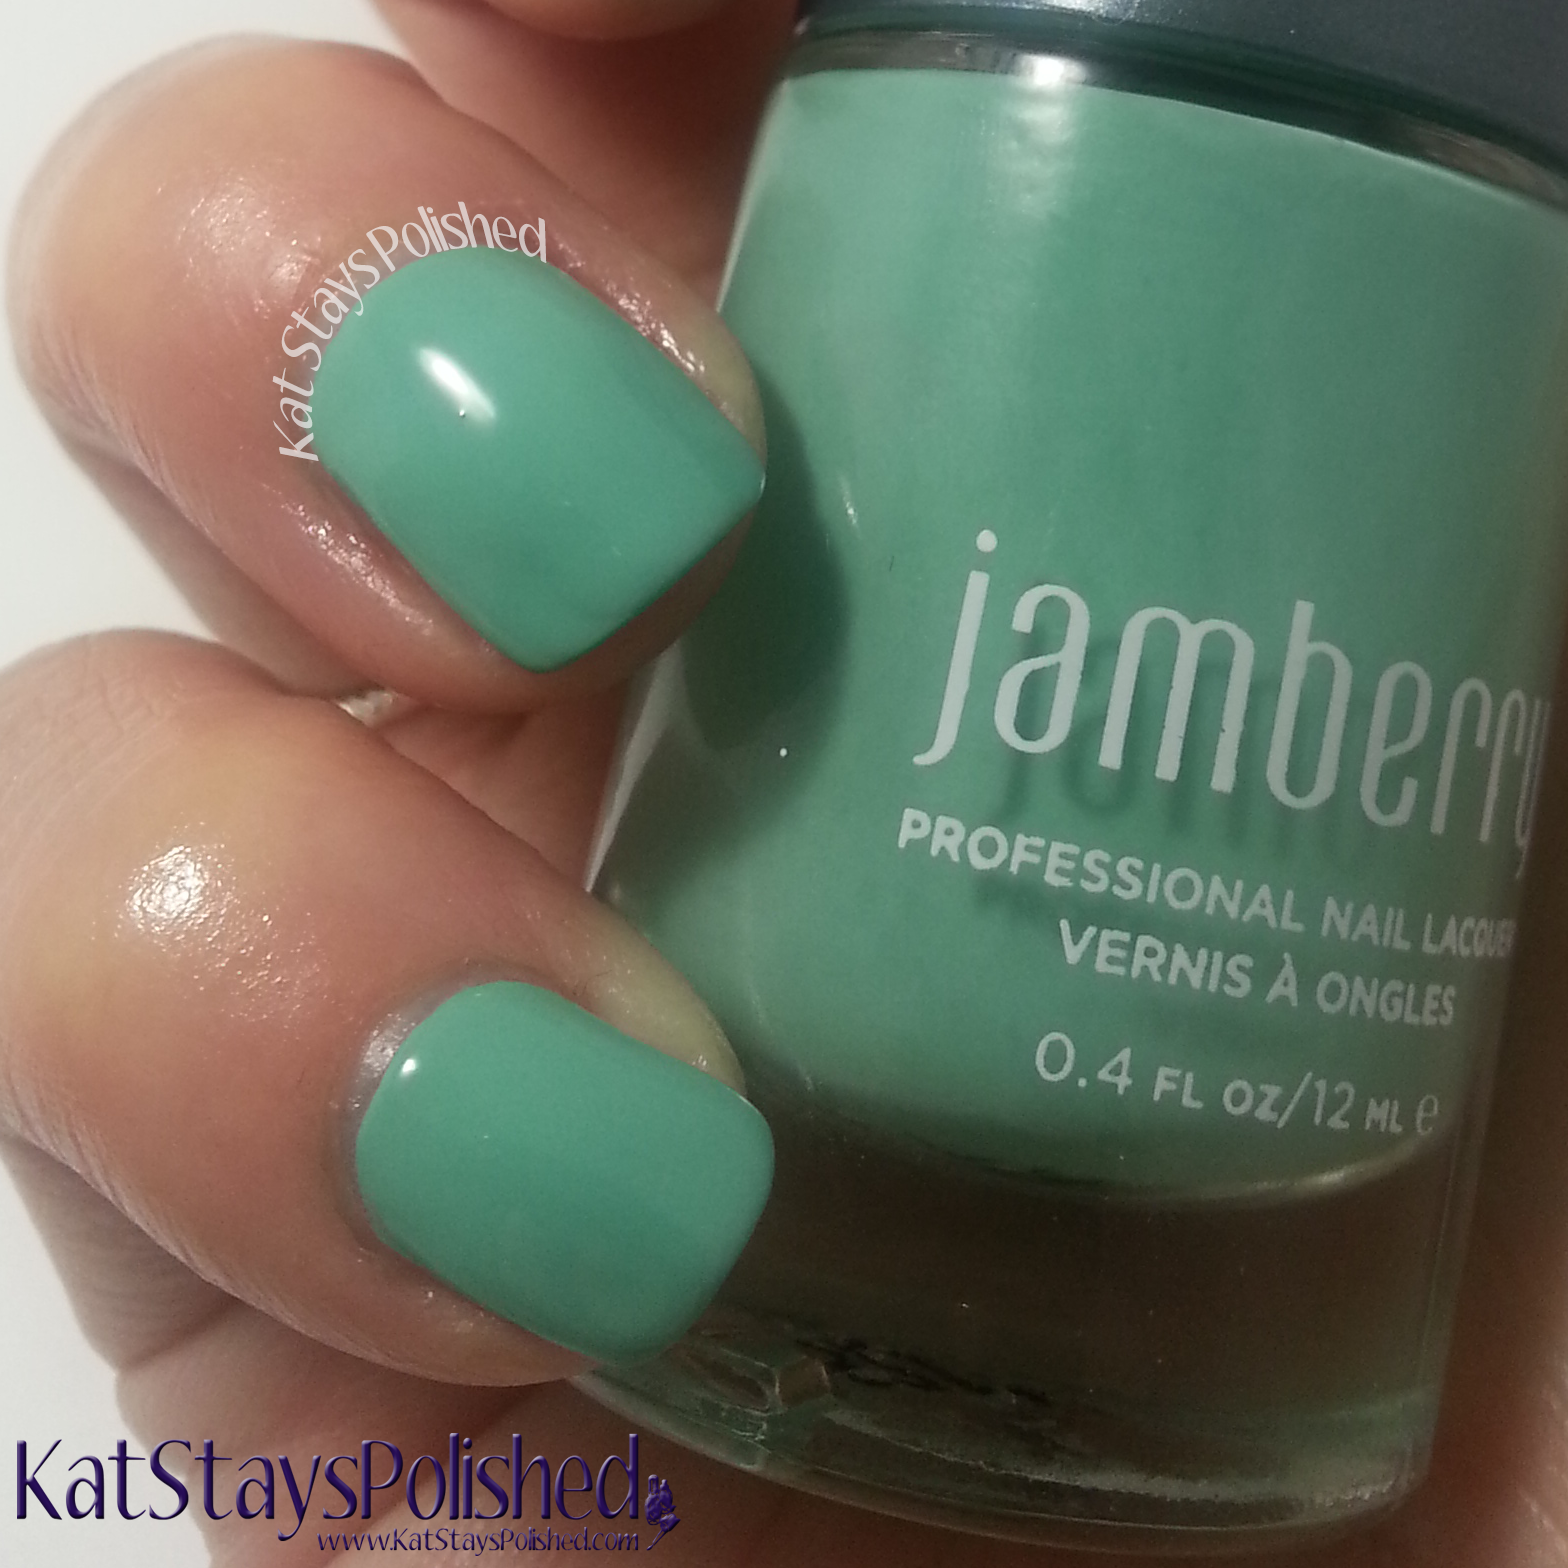 Jamberry Nail Lacquer - Hint of Mint   Kat Stays Polished